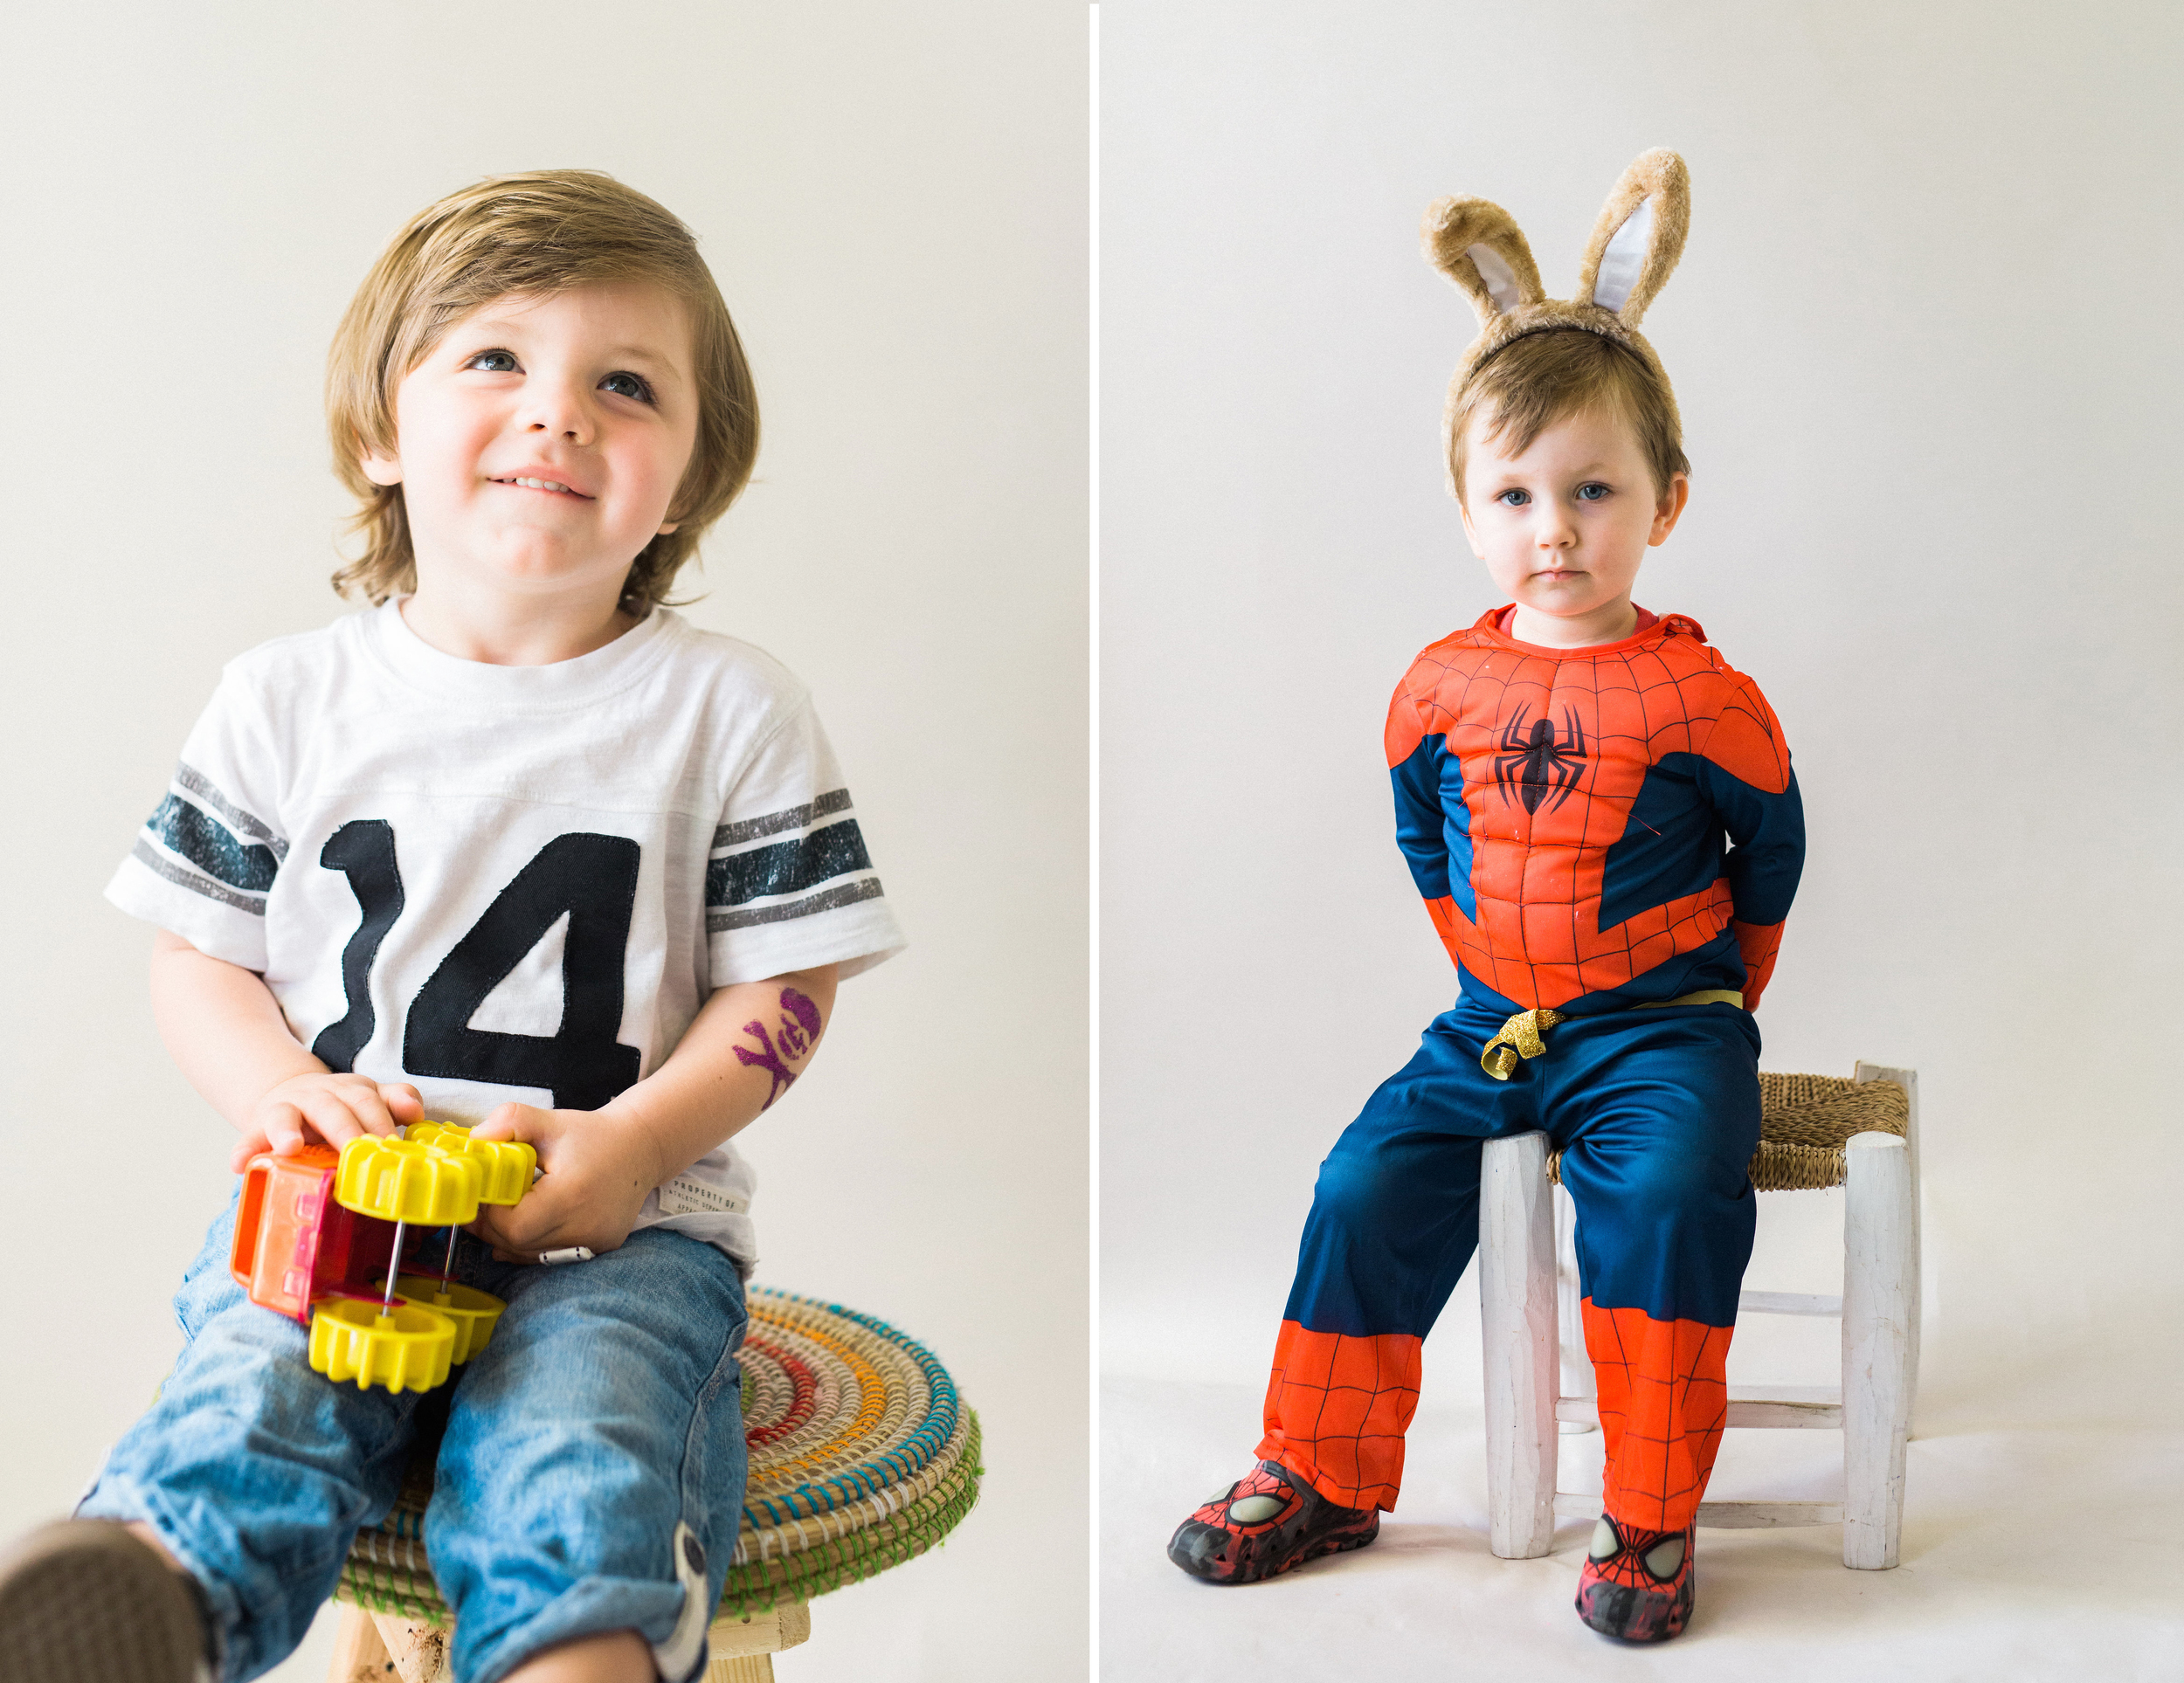 books-and-cookies_santa-monica-los-angeles-childrens-family-photography_4.jpg